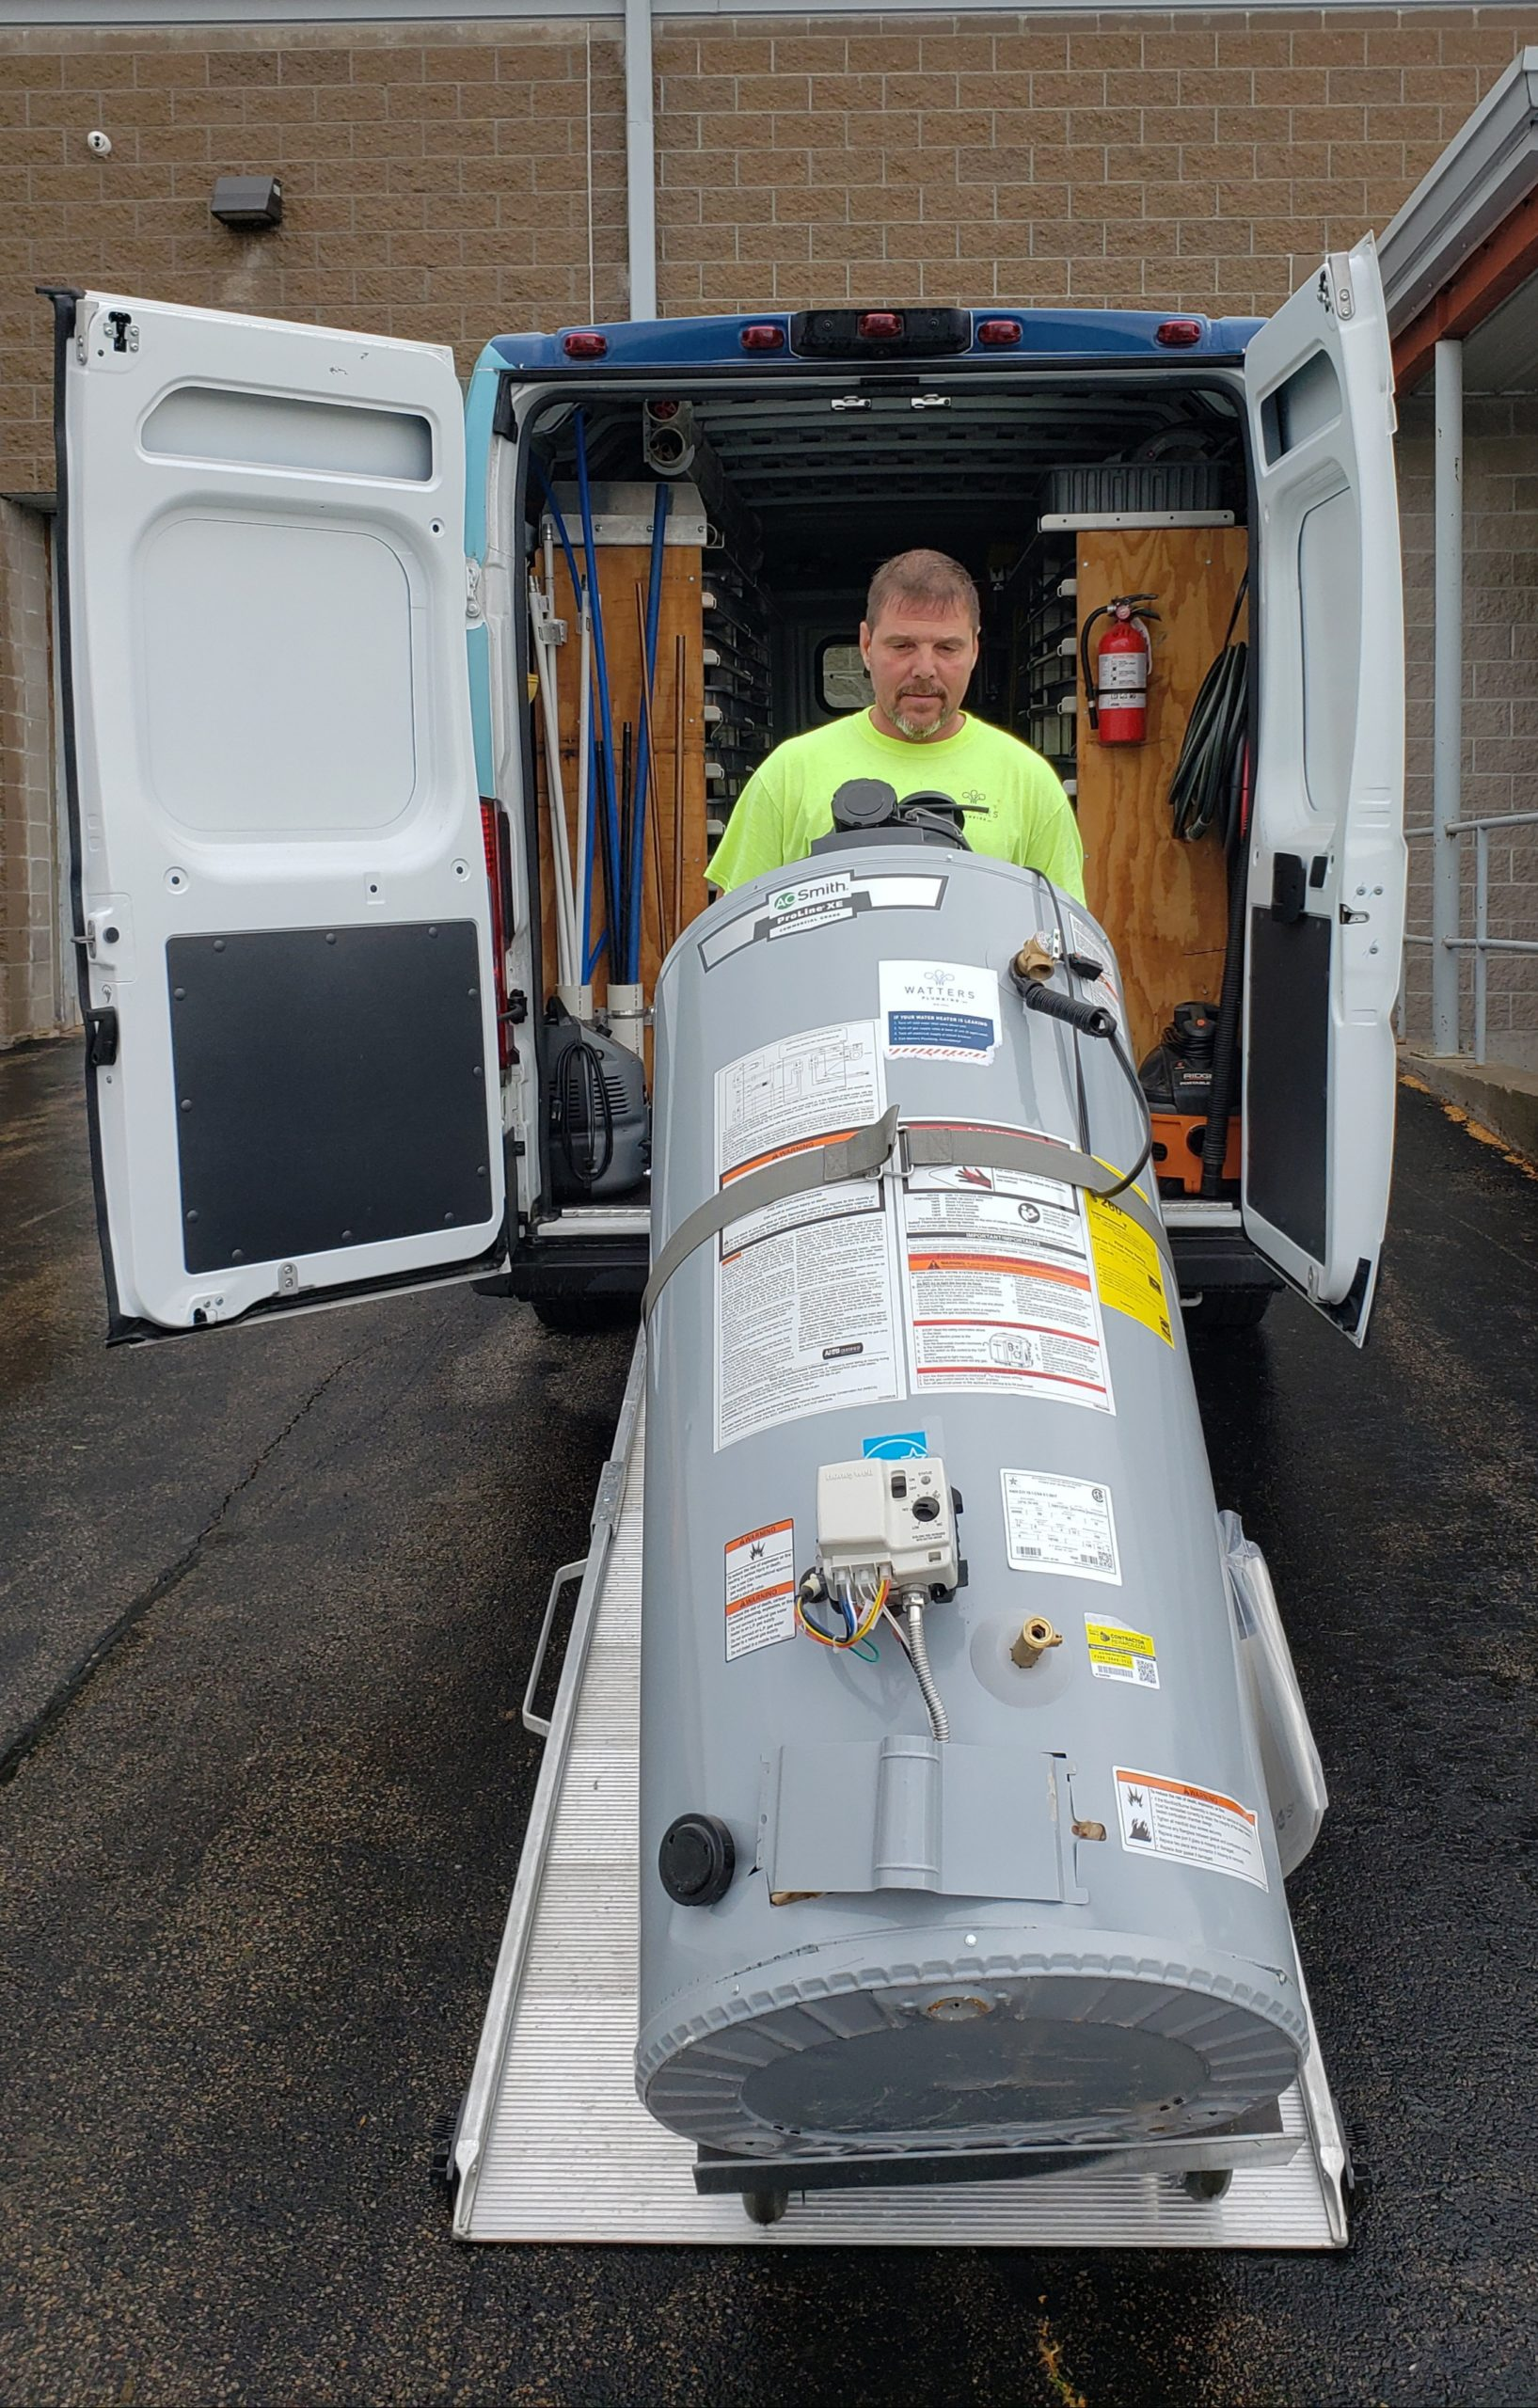 Watters Plumbing's employee loading a water heater into a van for a Northeast Wisconsin home